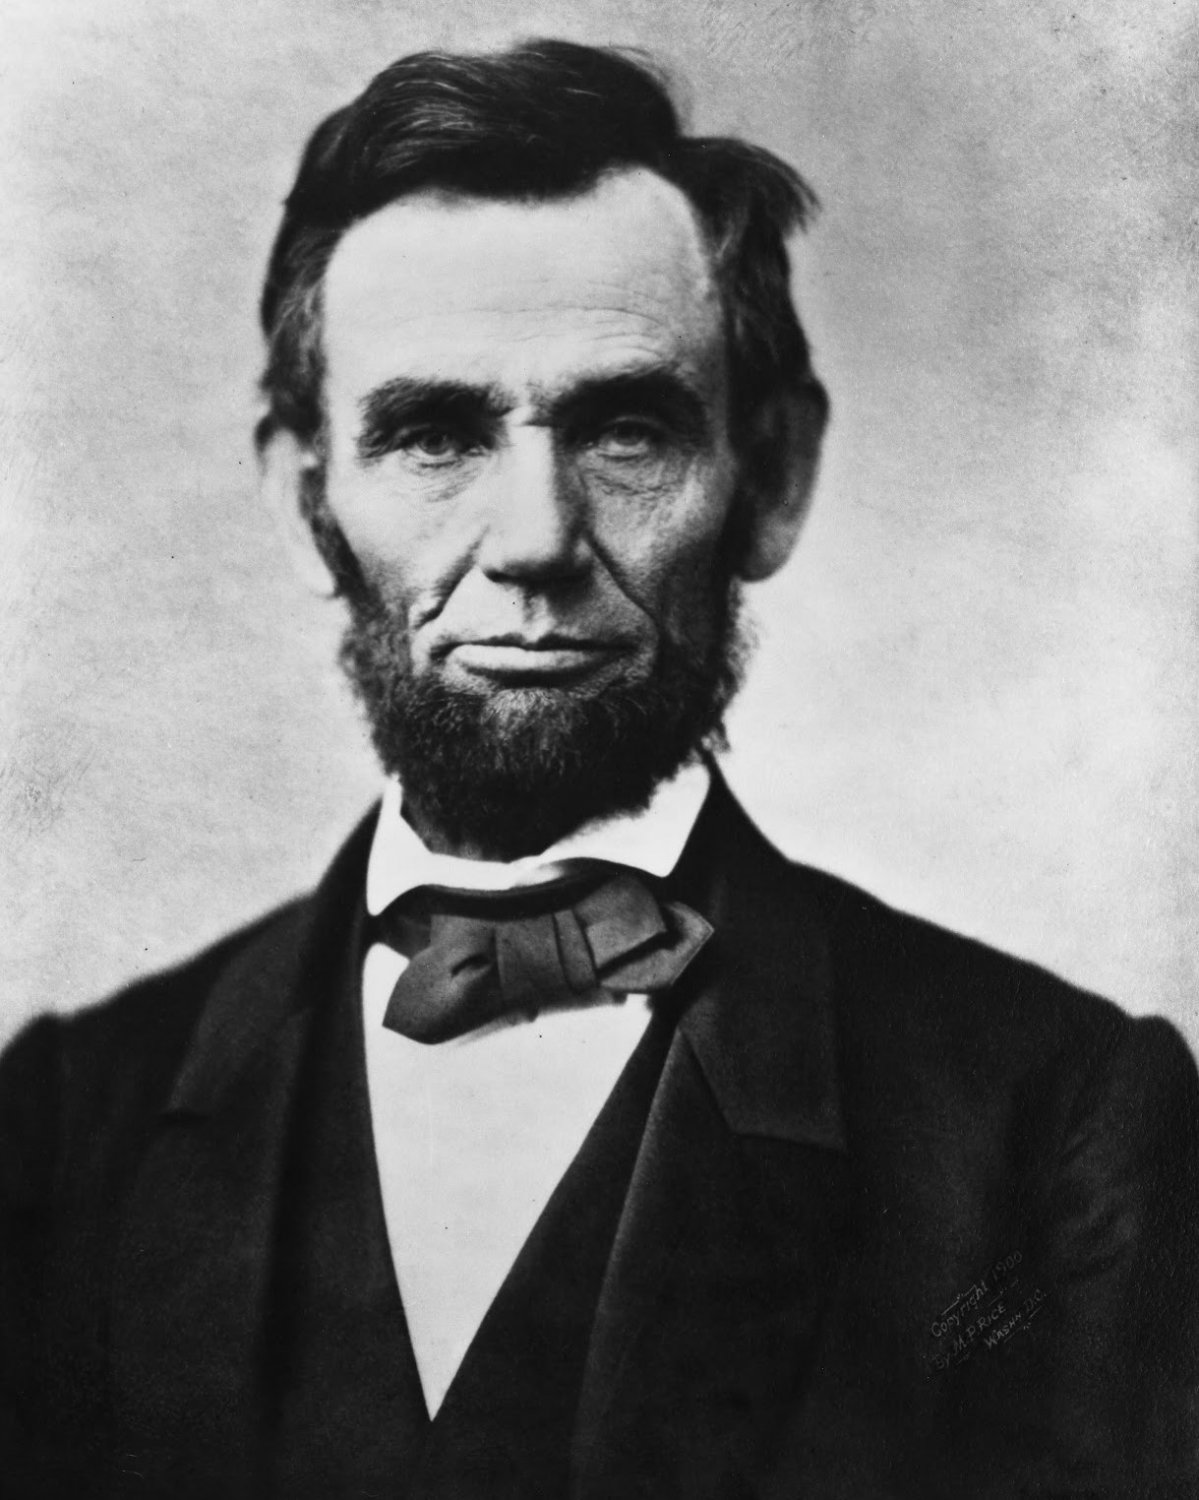 ABRAHAM LINCOLN - 16TH PRESIDENT OF THE UNITED STATES - 8X10 PHOTO (AA-792)